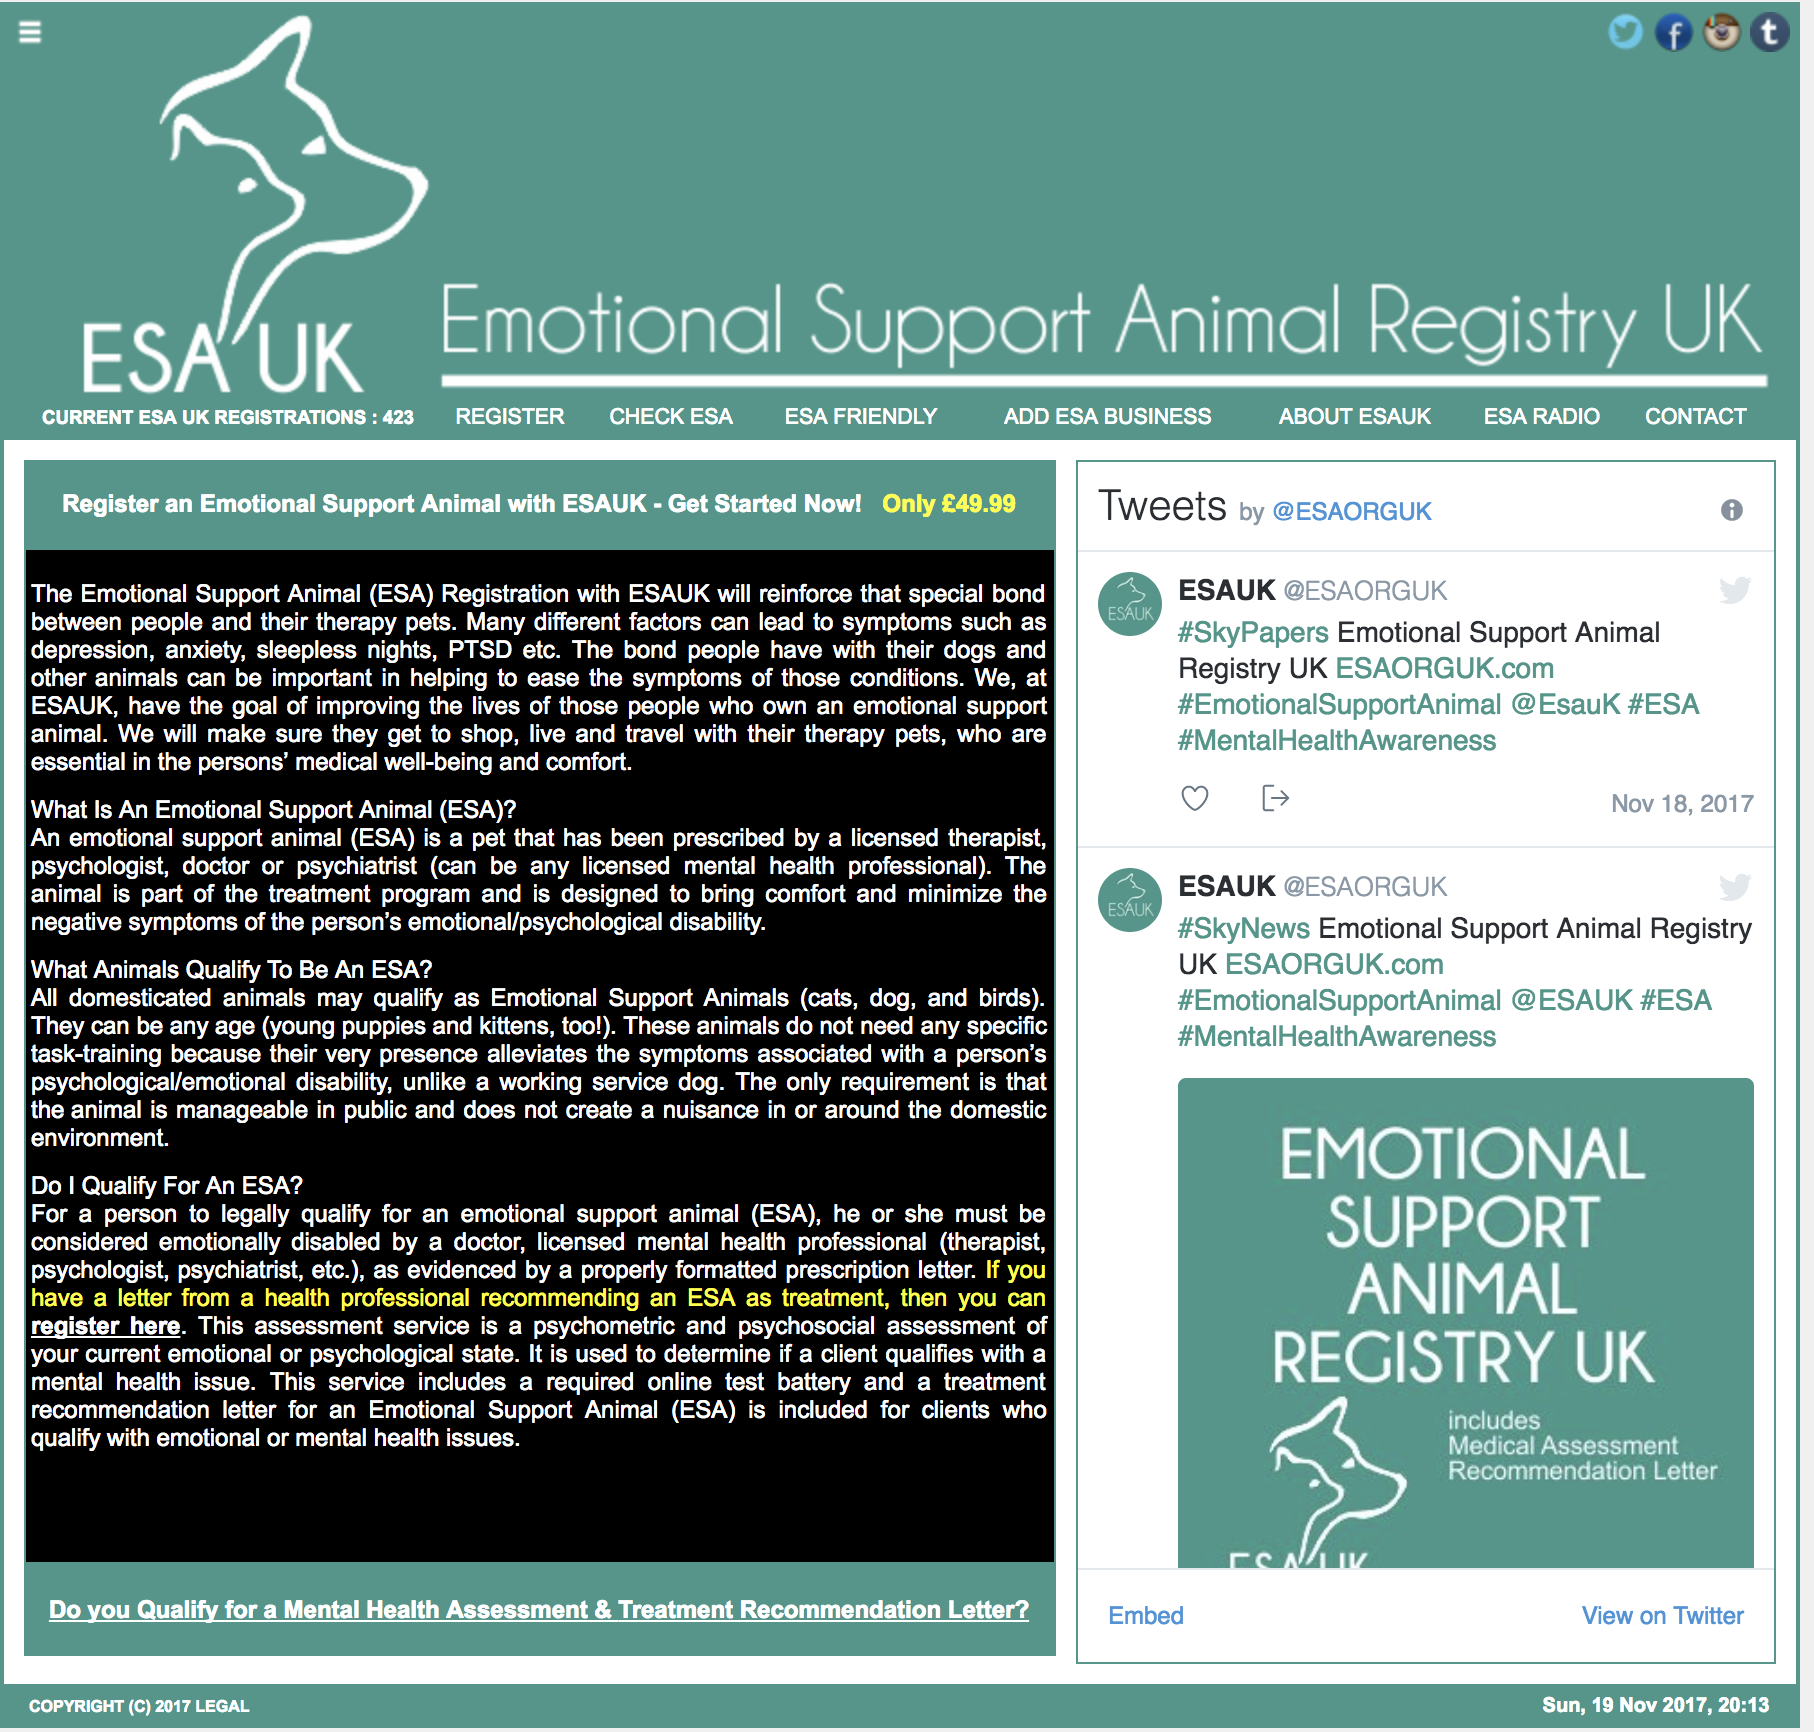 Emotional Support Animal Registry UK